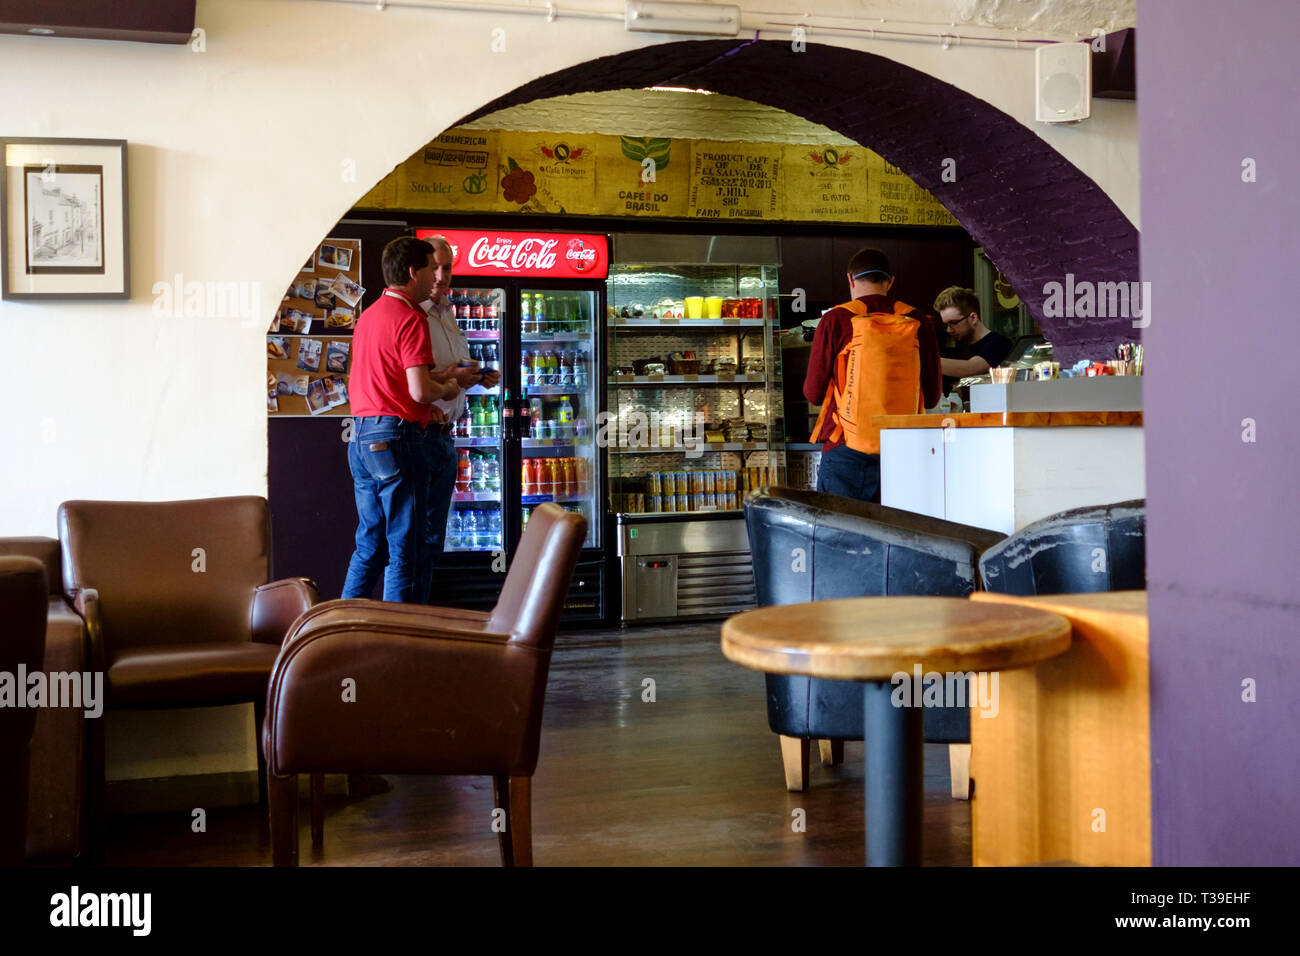 Cafe Gusto at Temple Meads Station Bristol - Stock Image